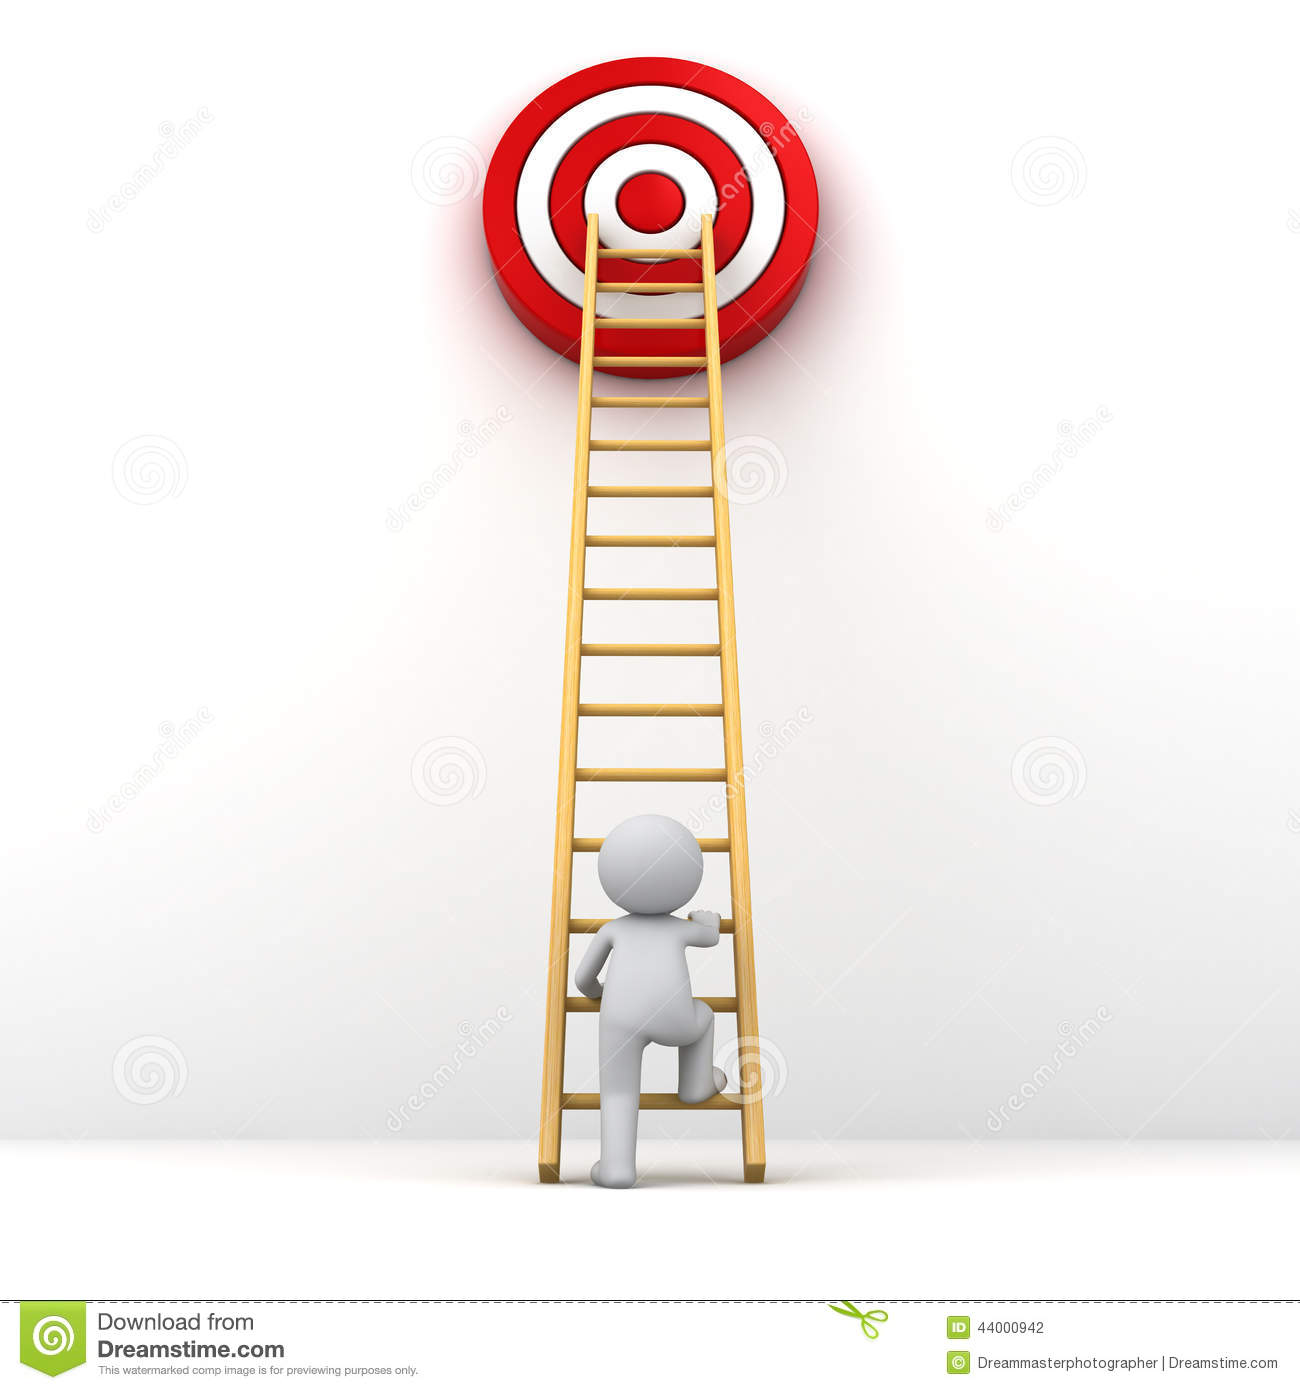 Stock Illustration D Man Climbing Ladder To Red Goal Target Business Concept Image44000942 additionally 5 Reasons Why Failure Key Success Danny Schuman as well Presentation On 8020 Rule The Pareto Principle  mlab India besides What Does Mean In Electrical Schematic Diagram likewise Stock Image Maze Red Arrow Solution Image23590591. on shortcut to success